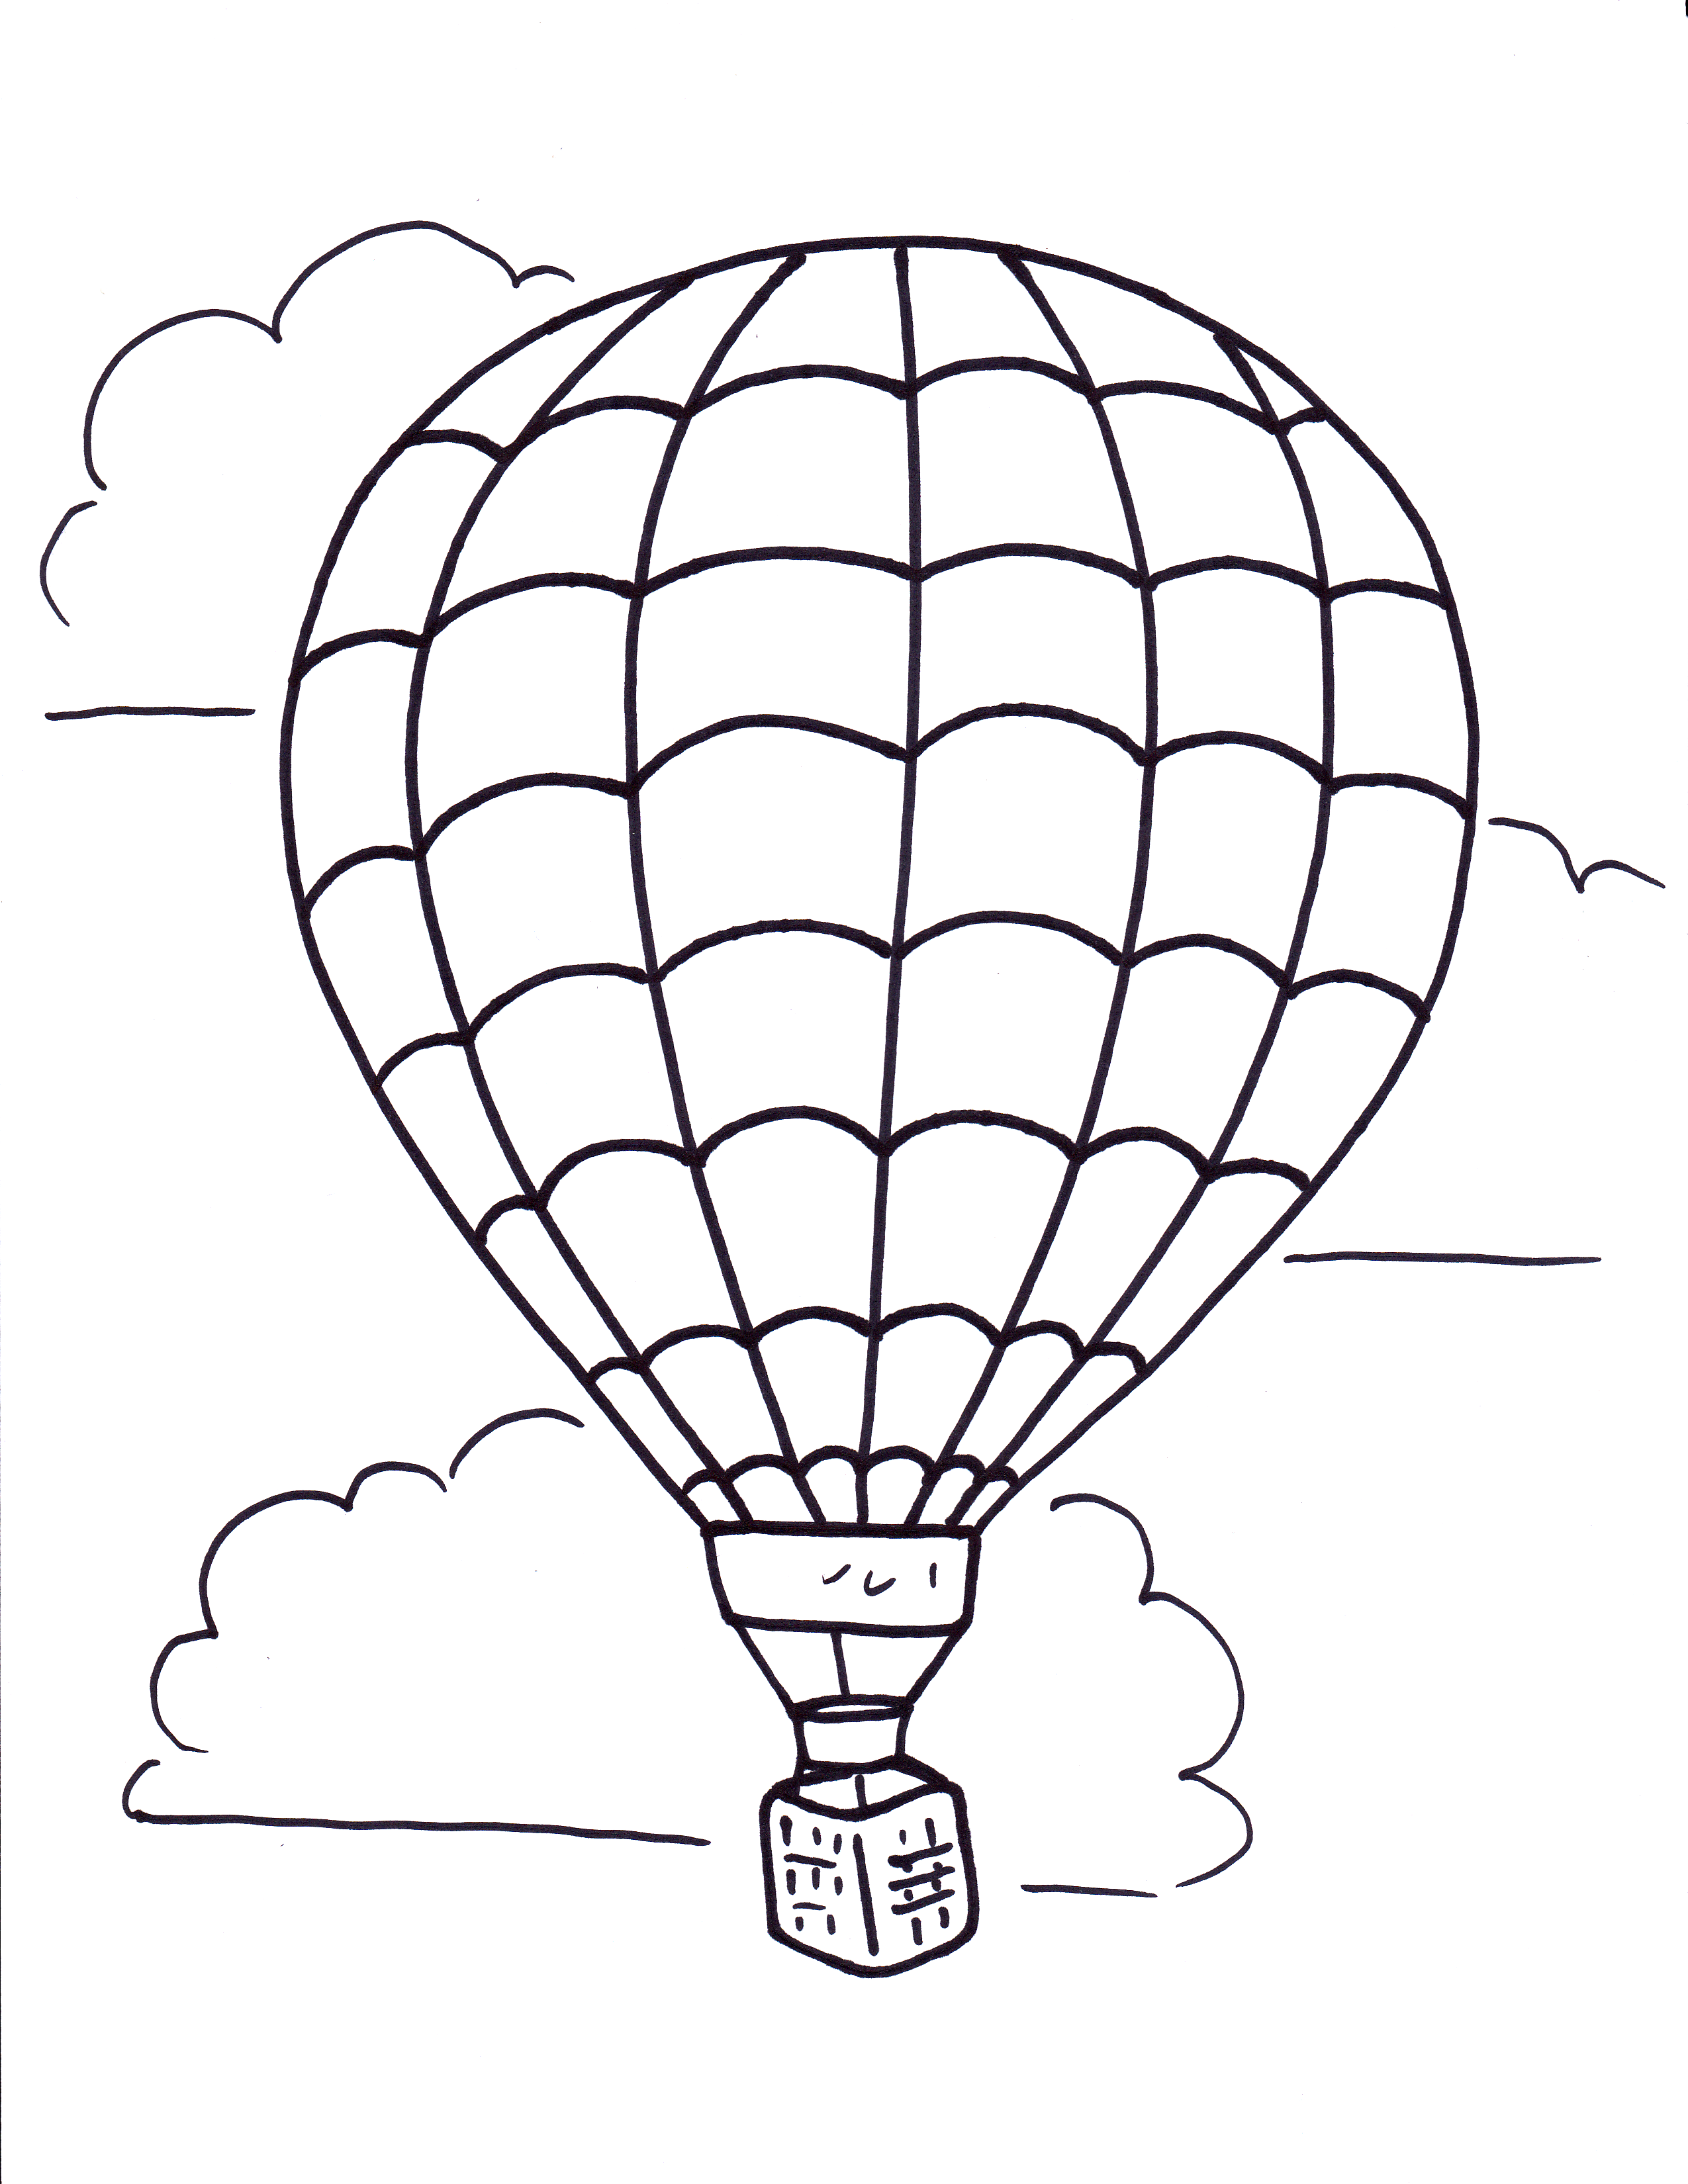 Hot Air Balloon Coloring Pages Free Printable At Getdrawings Com